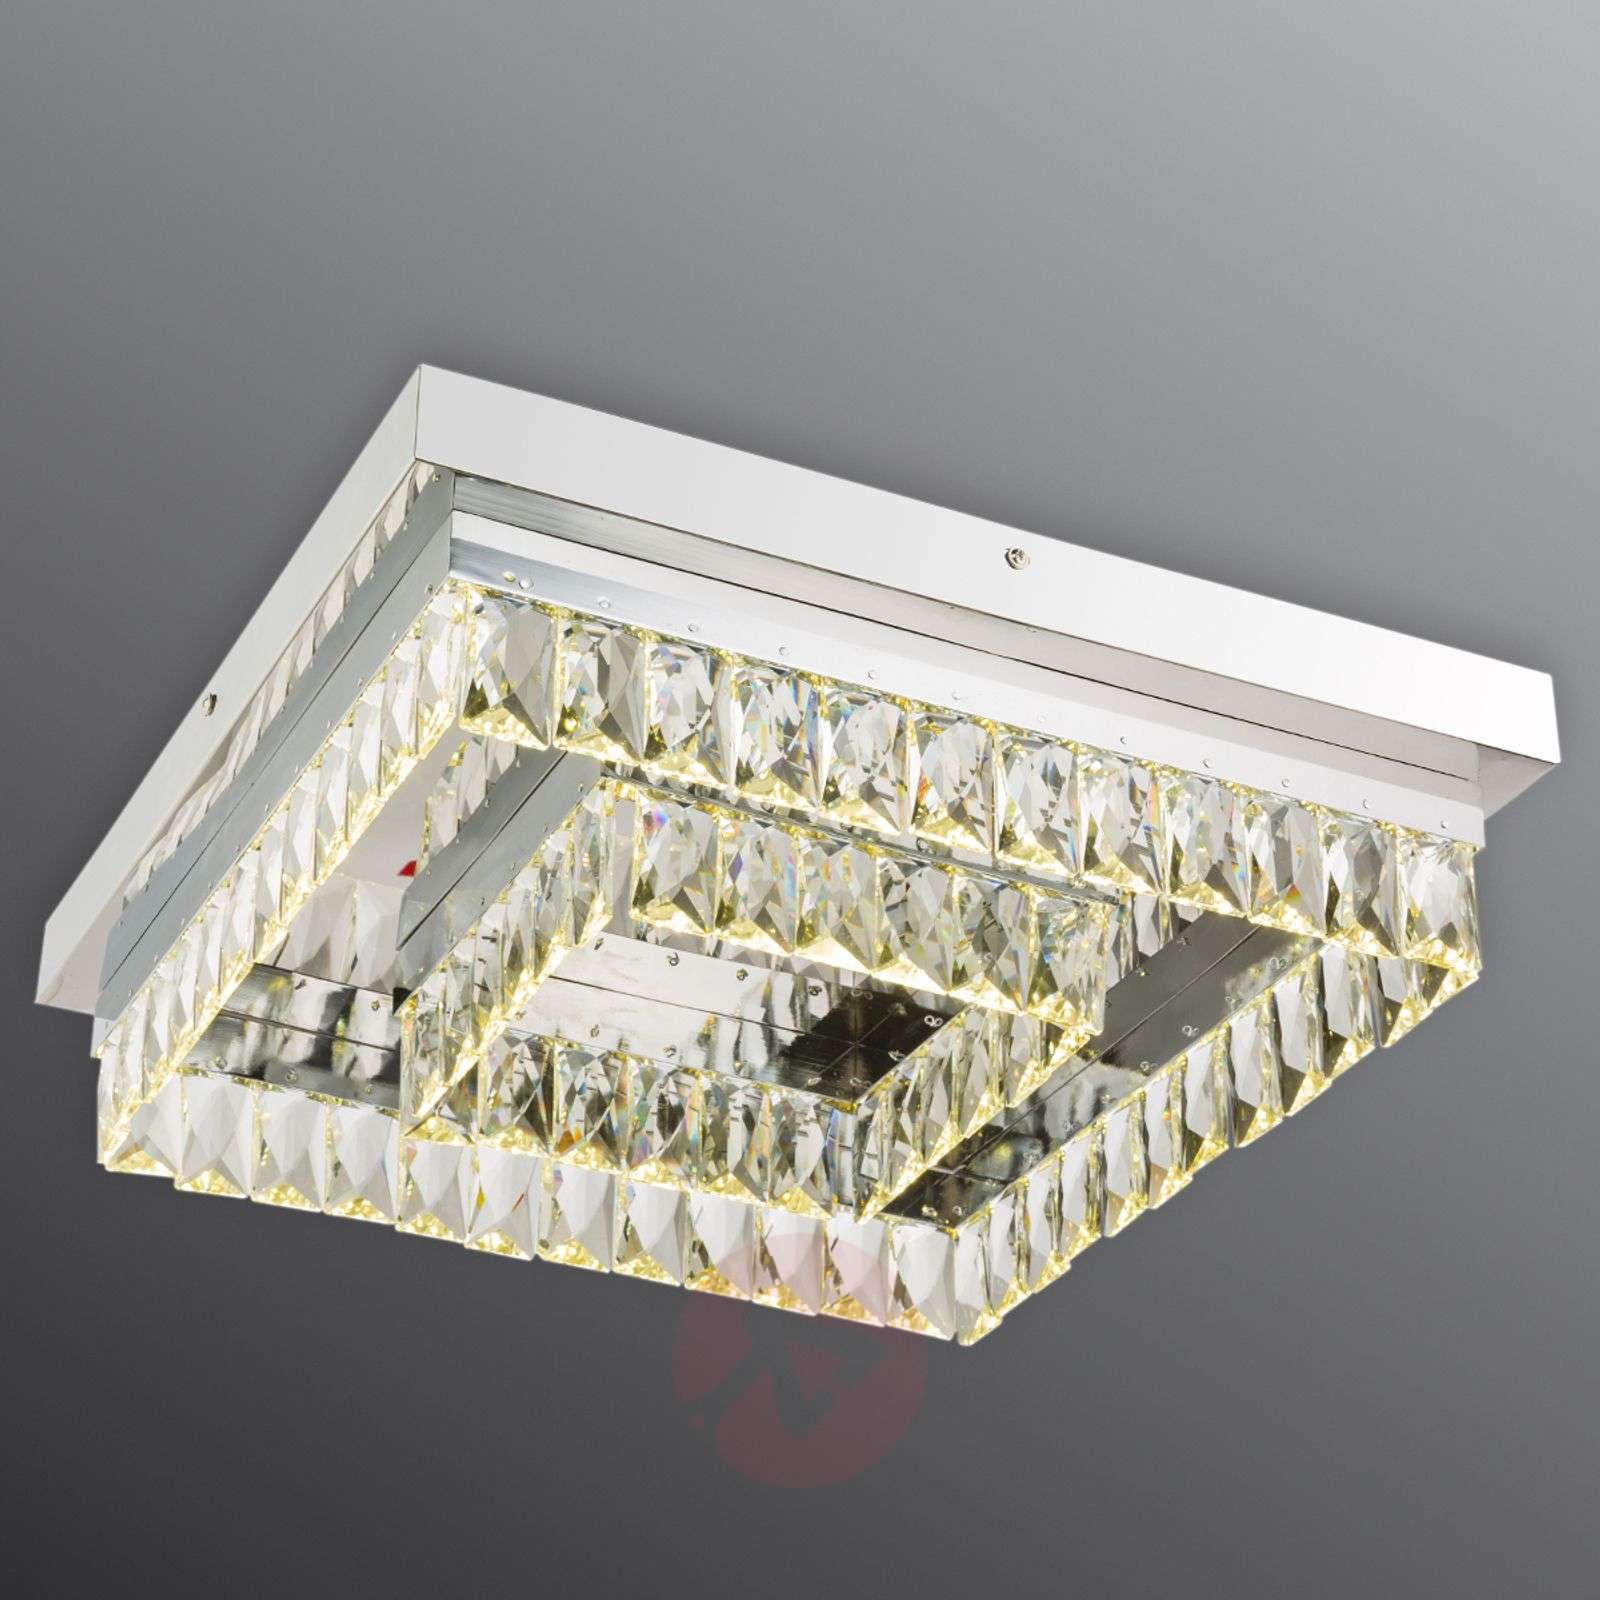 Plafoniera Ufficio Led : Acquista plafoniera led di cristallo febe quadrata 42 cm lampade.it